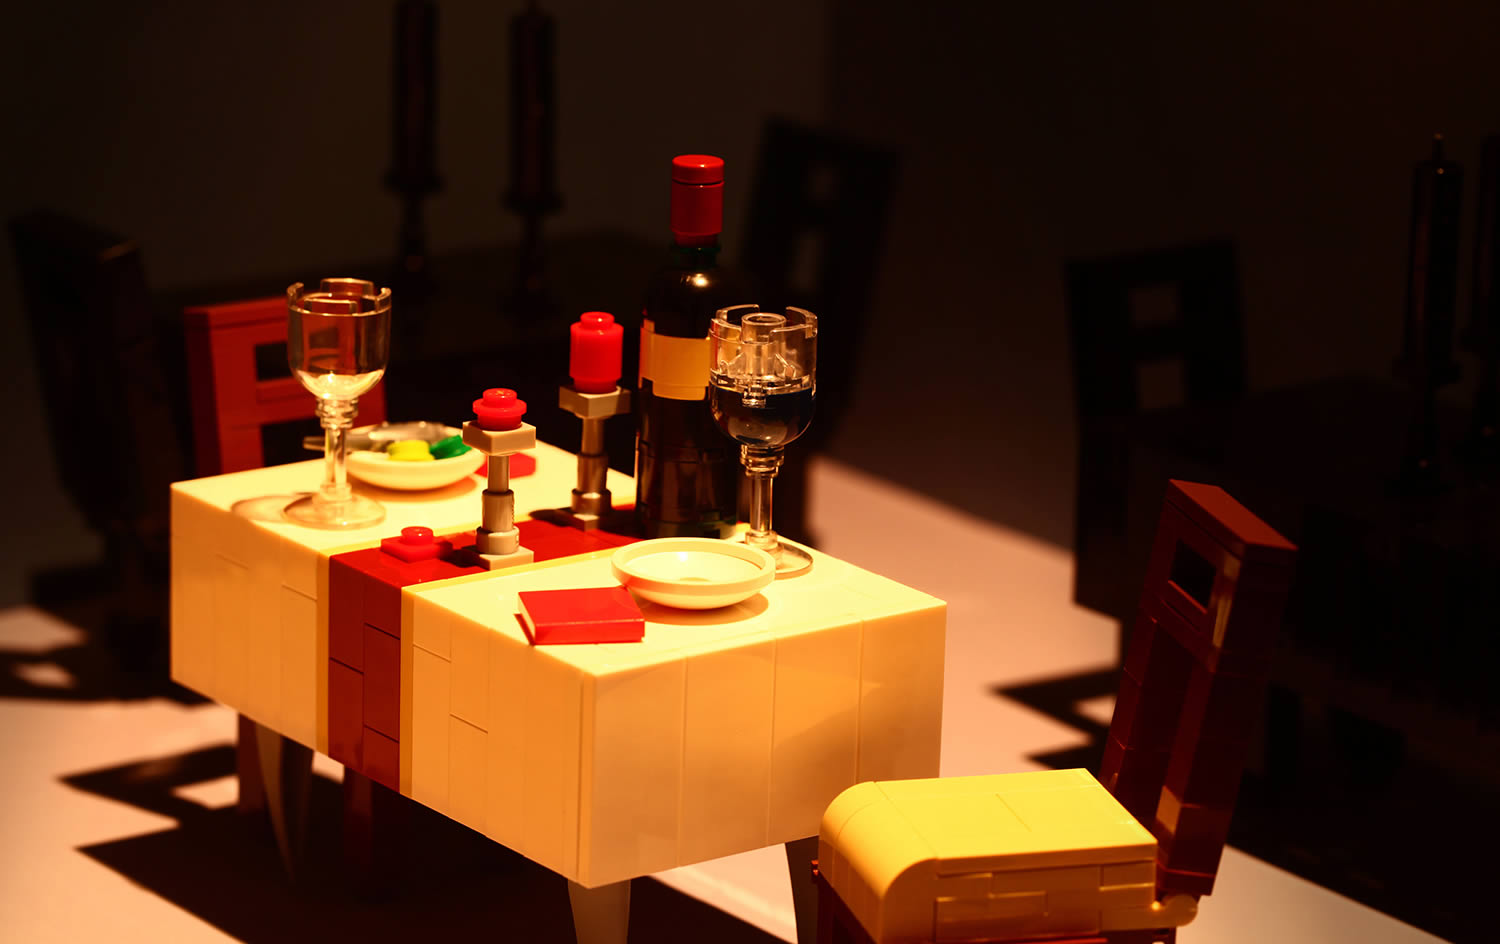 dinner party, lego